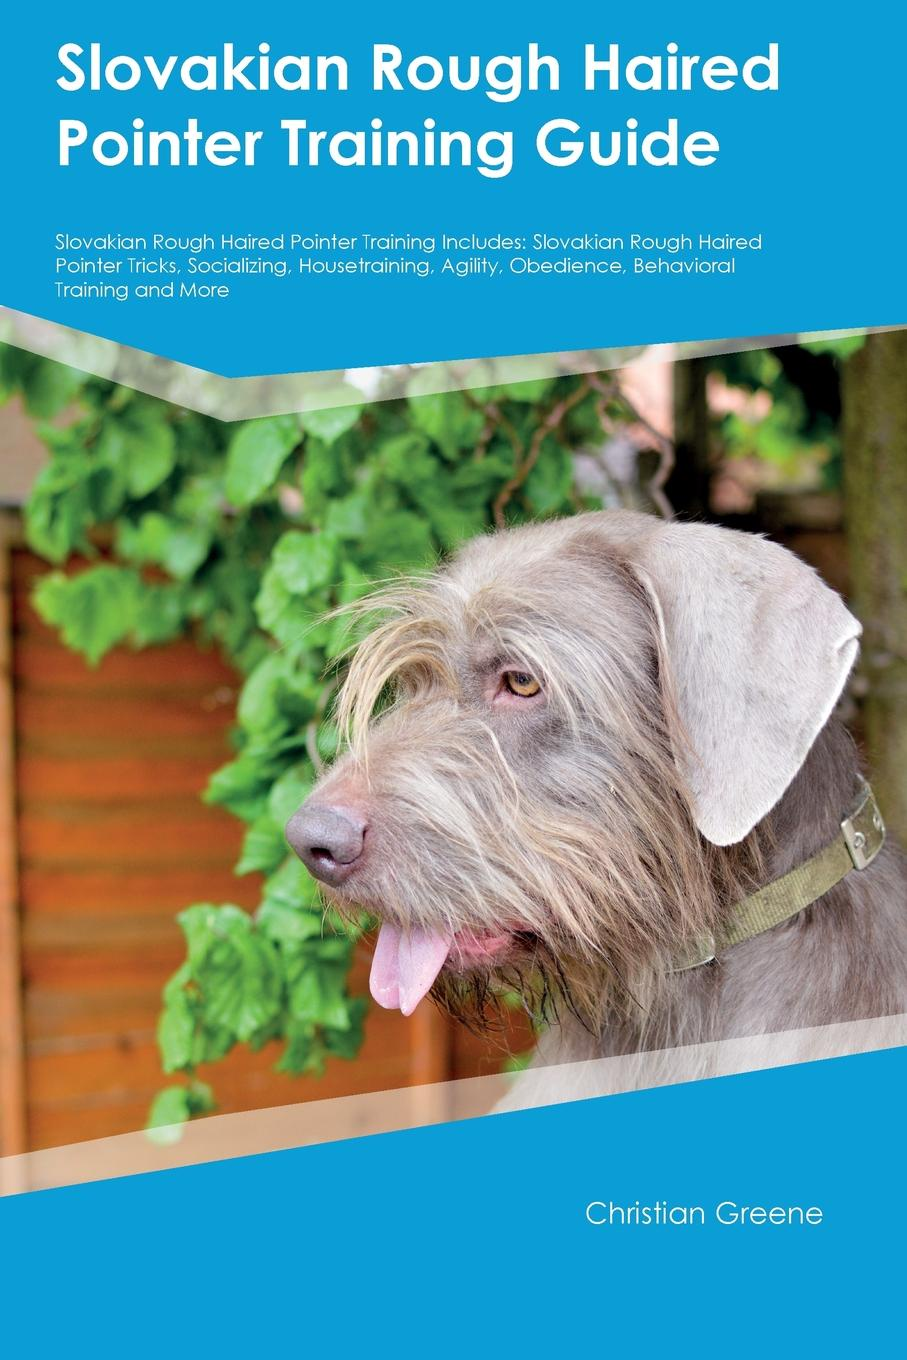 Kevin Bailey Slovakian Rough Haired Pointer Training Guide Slovakian Rough Haired Pointer Training Includes. Slovakian Rough Haired Pointer Tricks, Socializing, Housetraining, Agility, Obedience, Behavioral Training and More the rough guide to tanzania